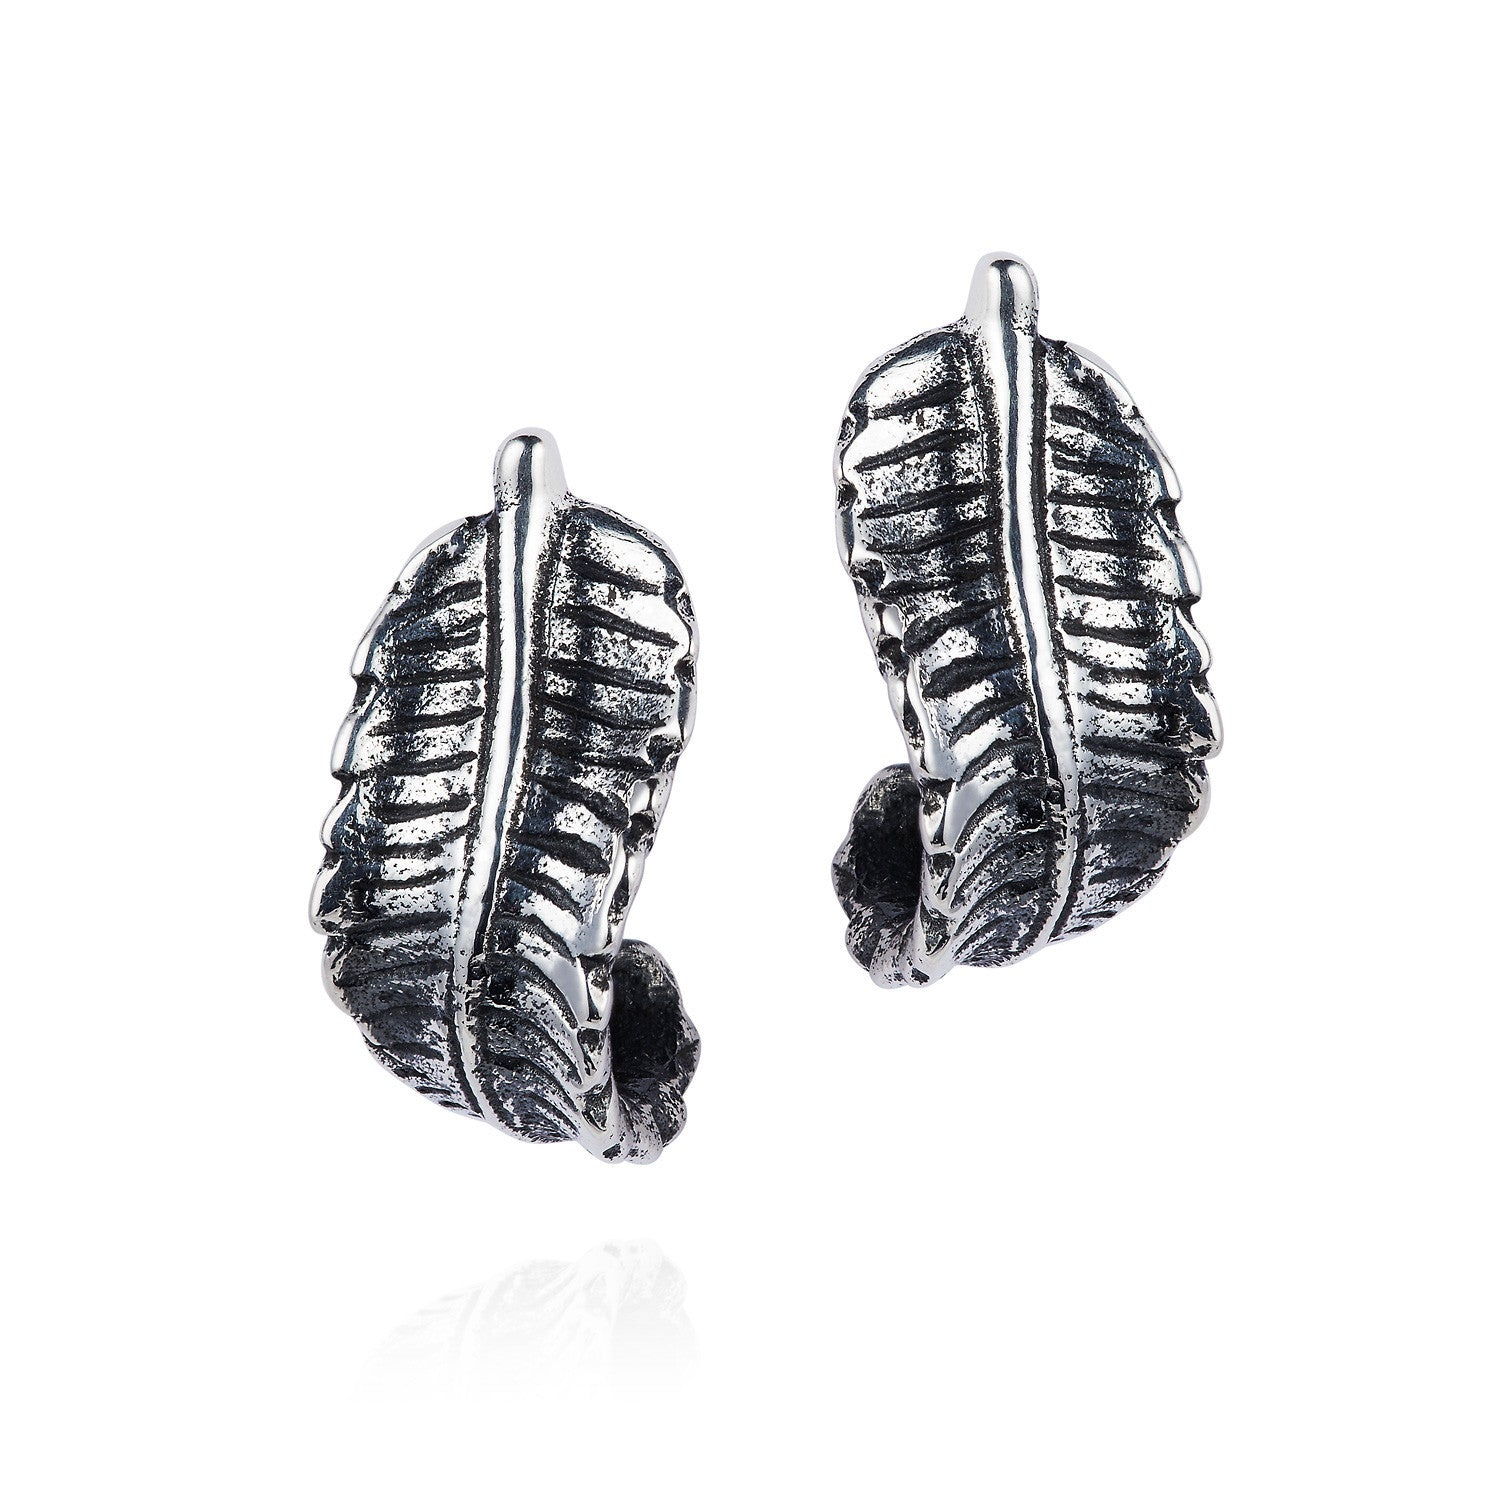 Curled silver Fern Earrings